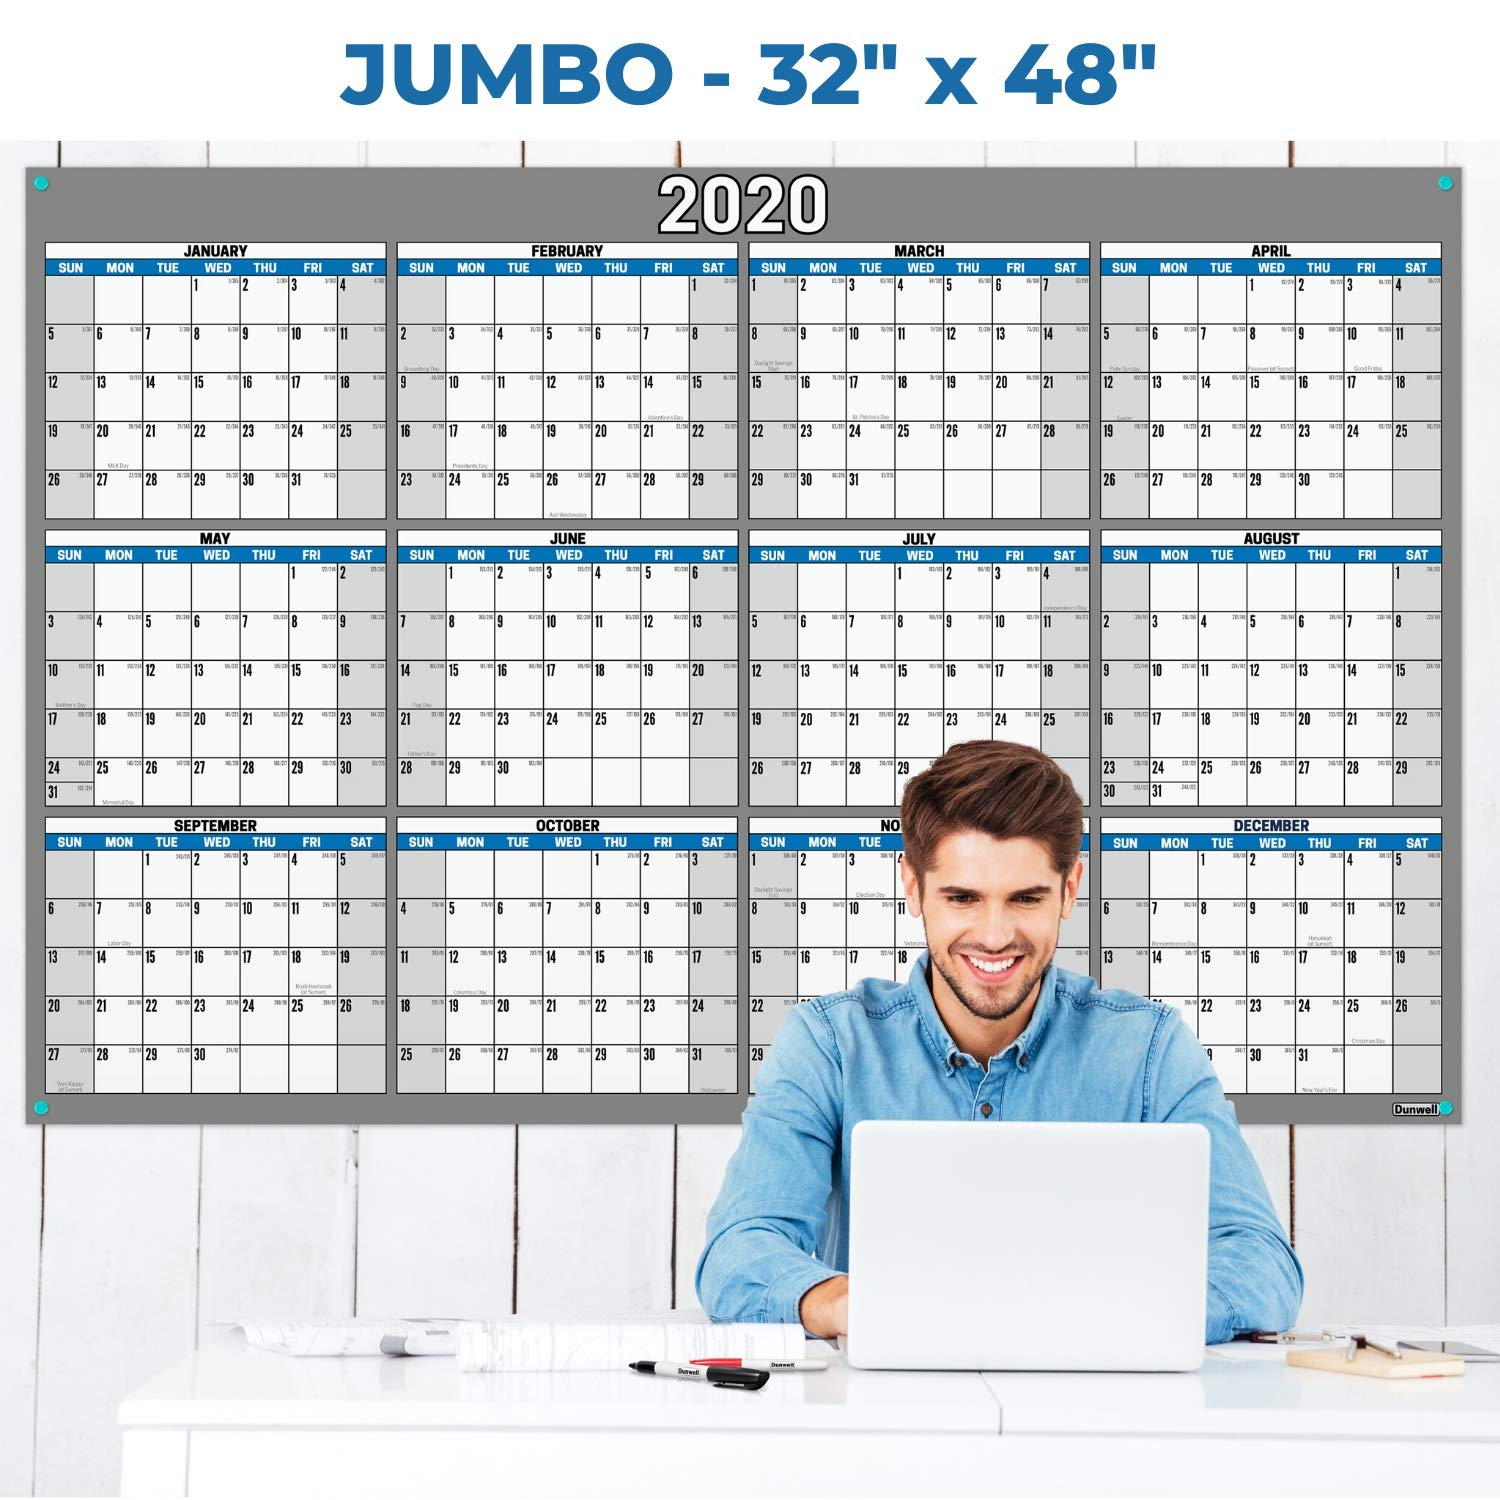 Jumbo 32x48 Erasable Undated Monthly Weekly Planner (Blue) with BONUS 2020 Horizontal Vertical Reversible Large Calendar, Laminated Dry Wet Erase Poster Calendars by Dunwell, Shipped Rolled Not Folded